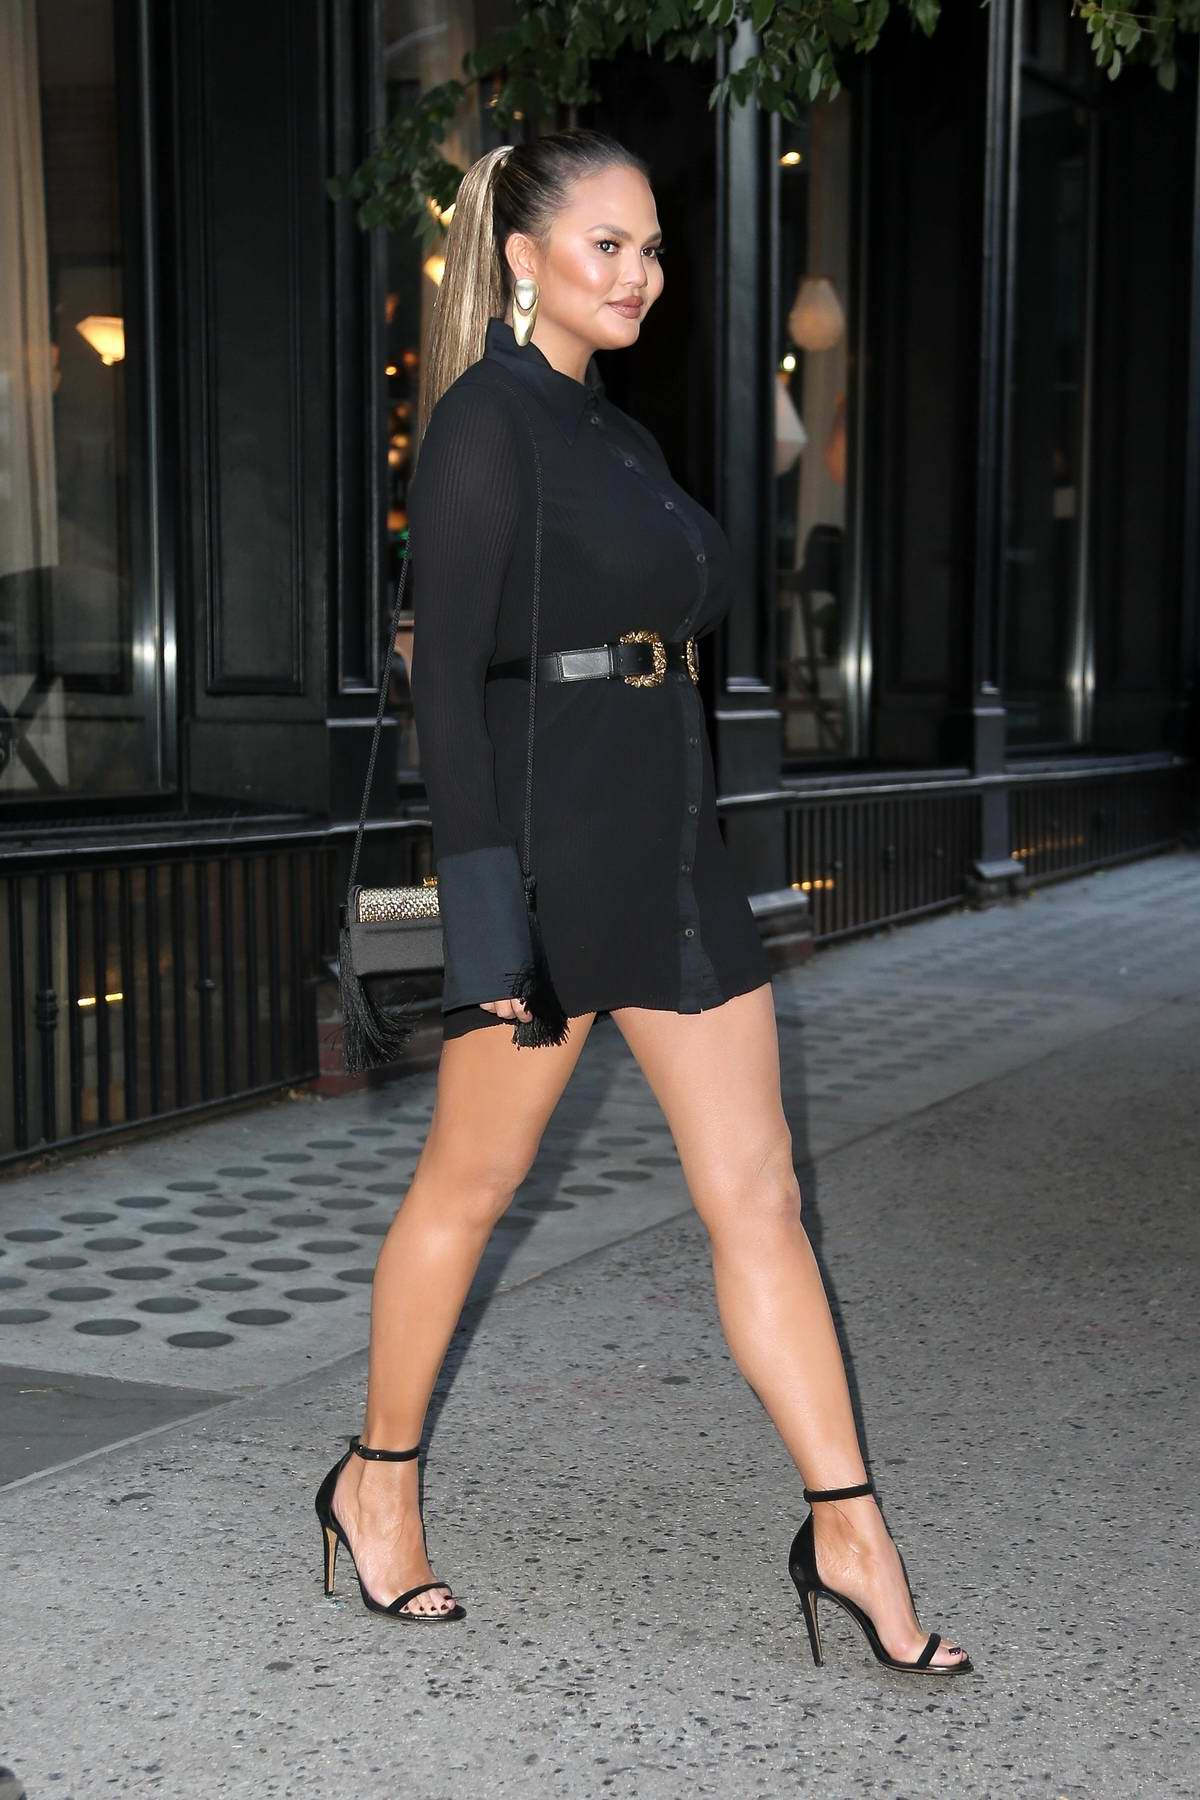 Chrissy Teigen looks stylish in a short black dress as she attends a Store Opening in New York City